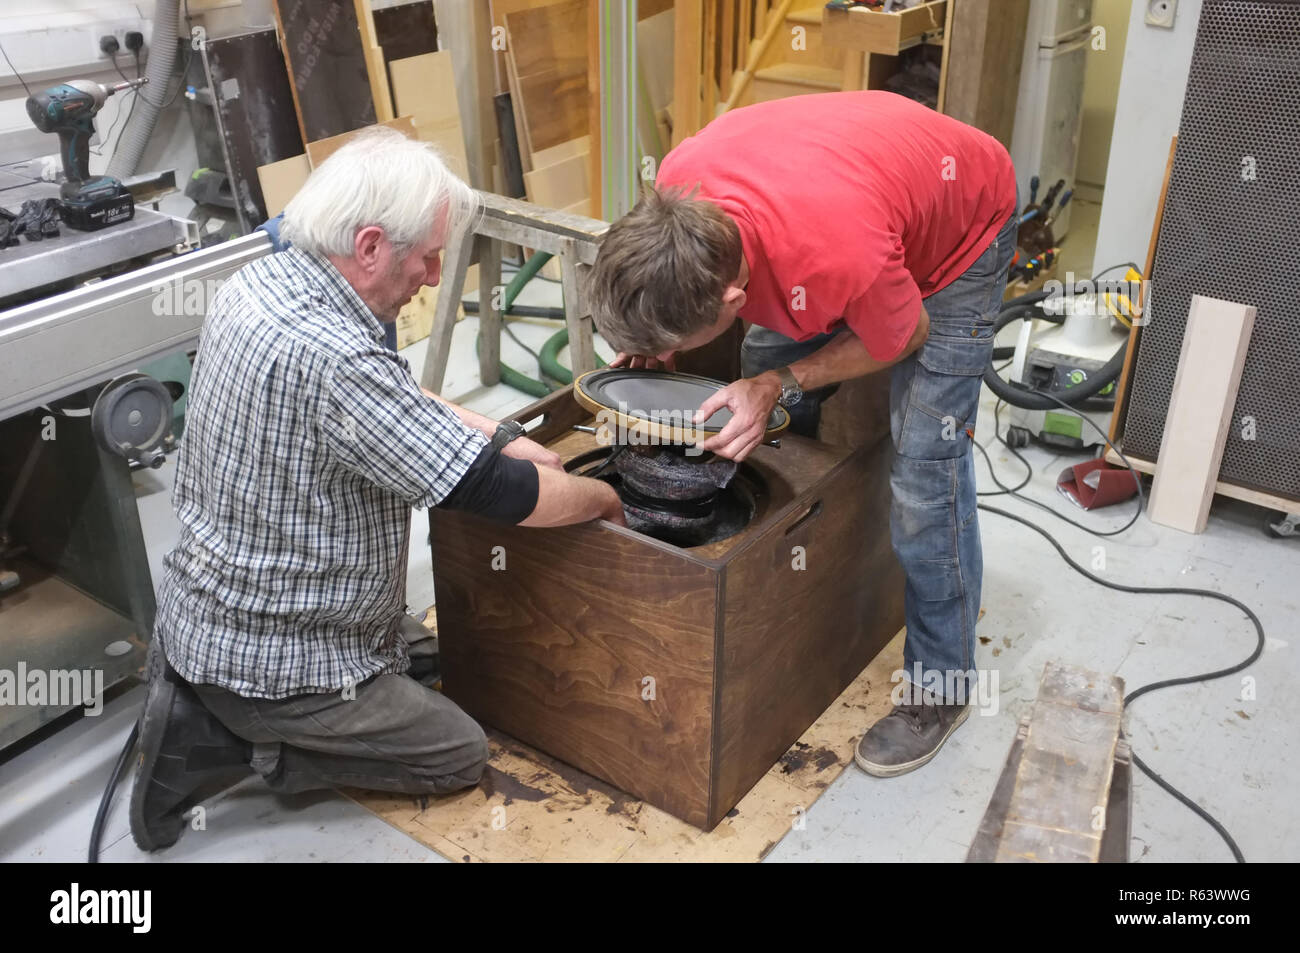 Two carpenters building a speaker for a sound system. Here Inserting a driver. - Stock Image